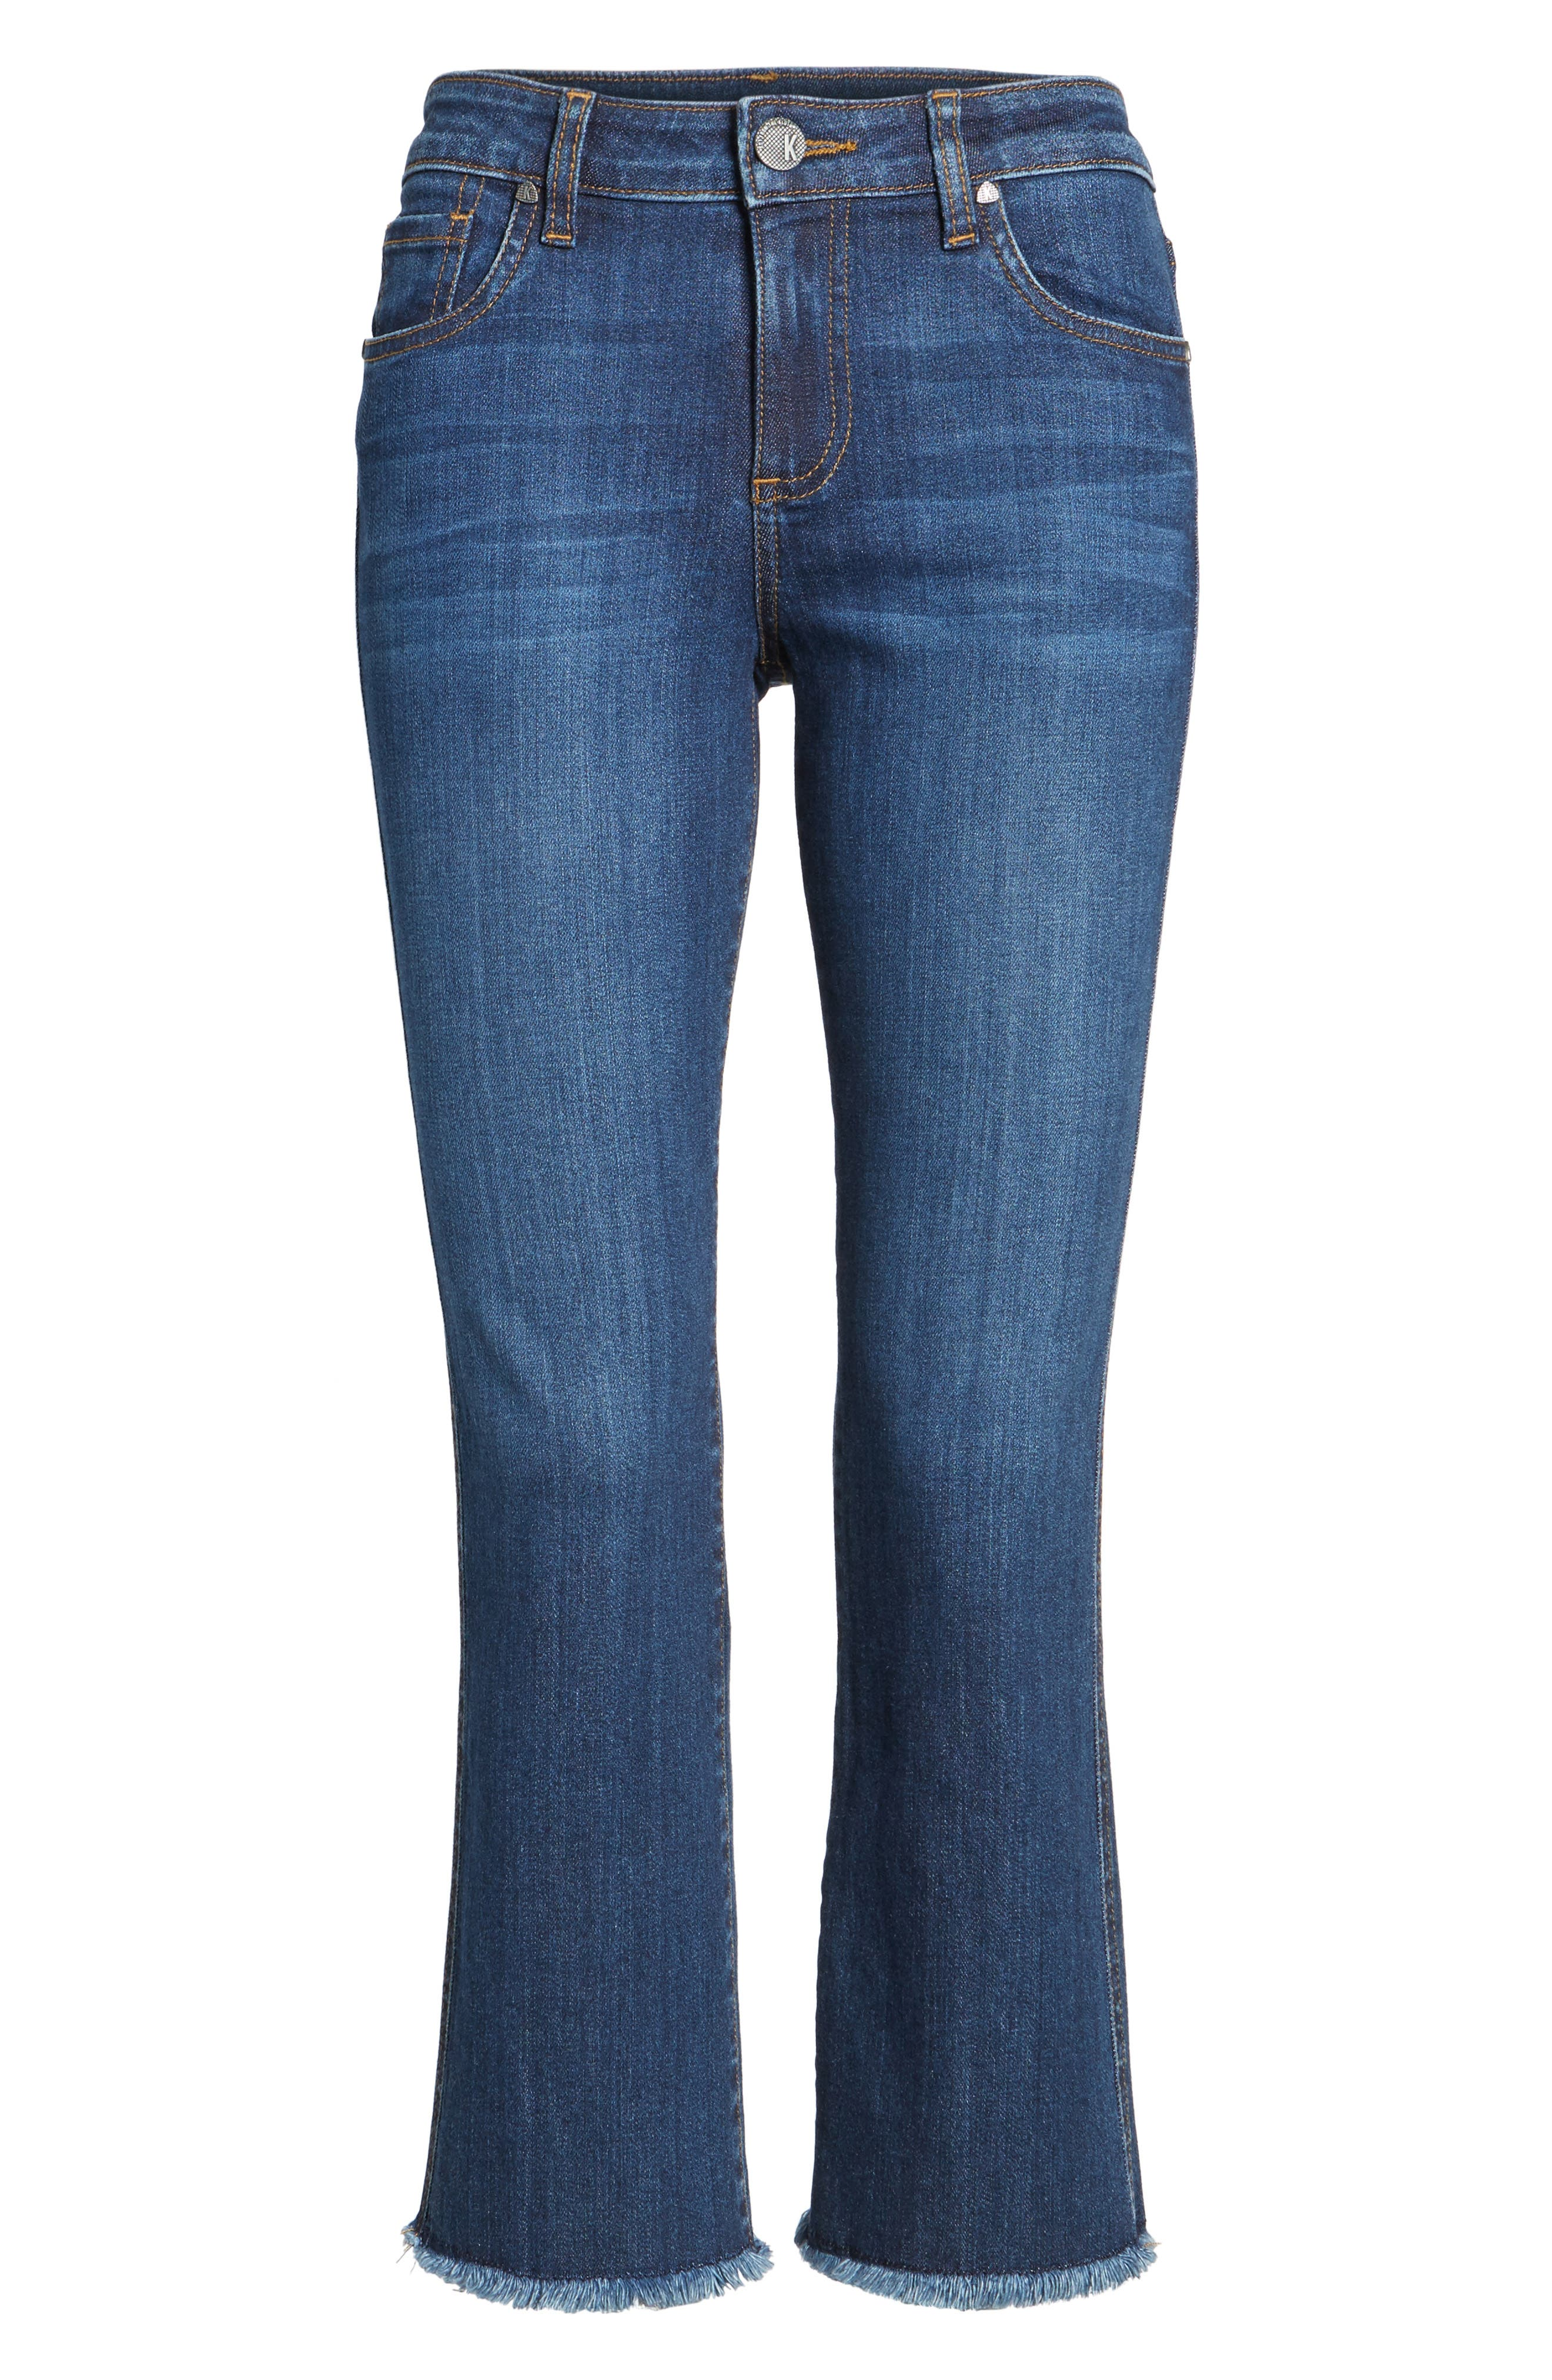 Reese Frayed Ankle Jeans,                             Alternate thumbnail 6, color,                             414